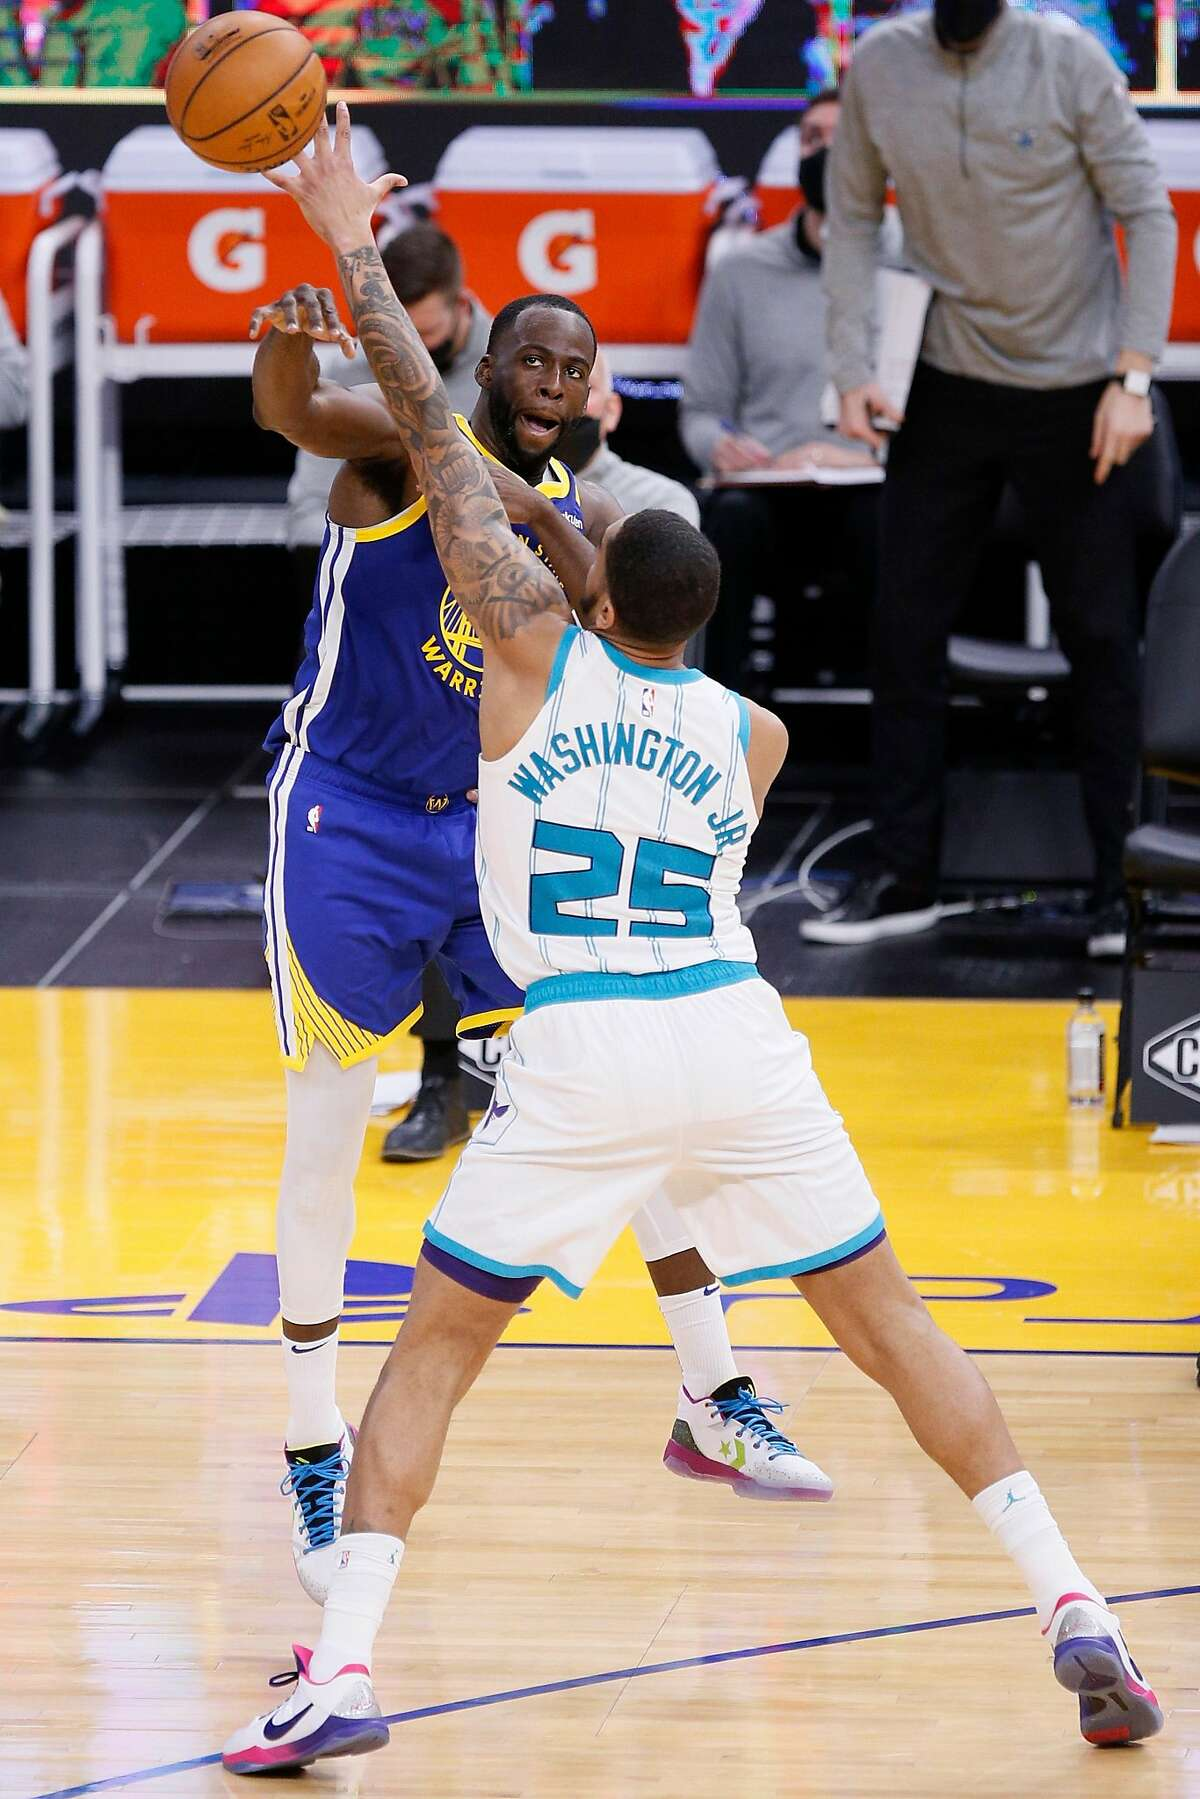 Golden State Warriors forward Draymond Green (23) passes while guarded by Charlotte Hornets forward P.J. Washington (25) in the third quarter of an NBA game at Chase Center, Friday, Feb. 26, 2021, in San Francisco, Calif.